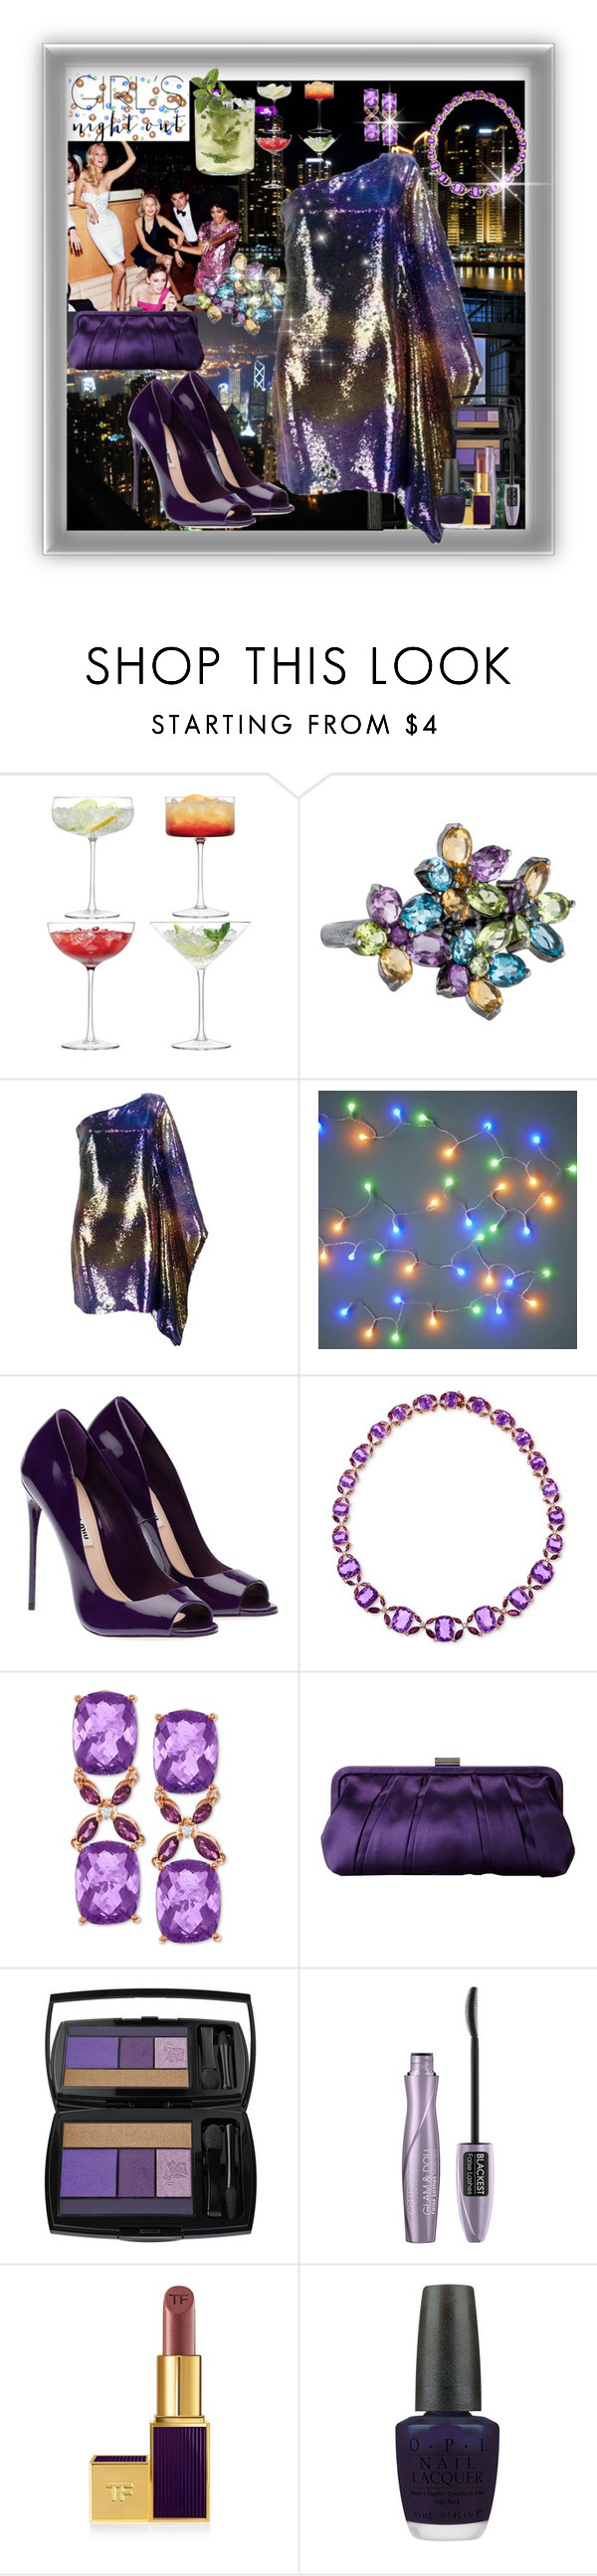 """Girls Night out"" by marionmeyer ❤ liked on Polyvore featuring LSA International, LALI Jewels, Nina, Lancôme, OPI and girlsnightout"